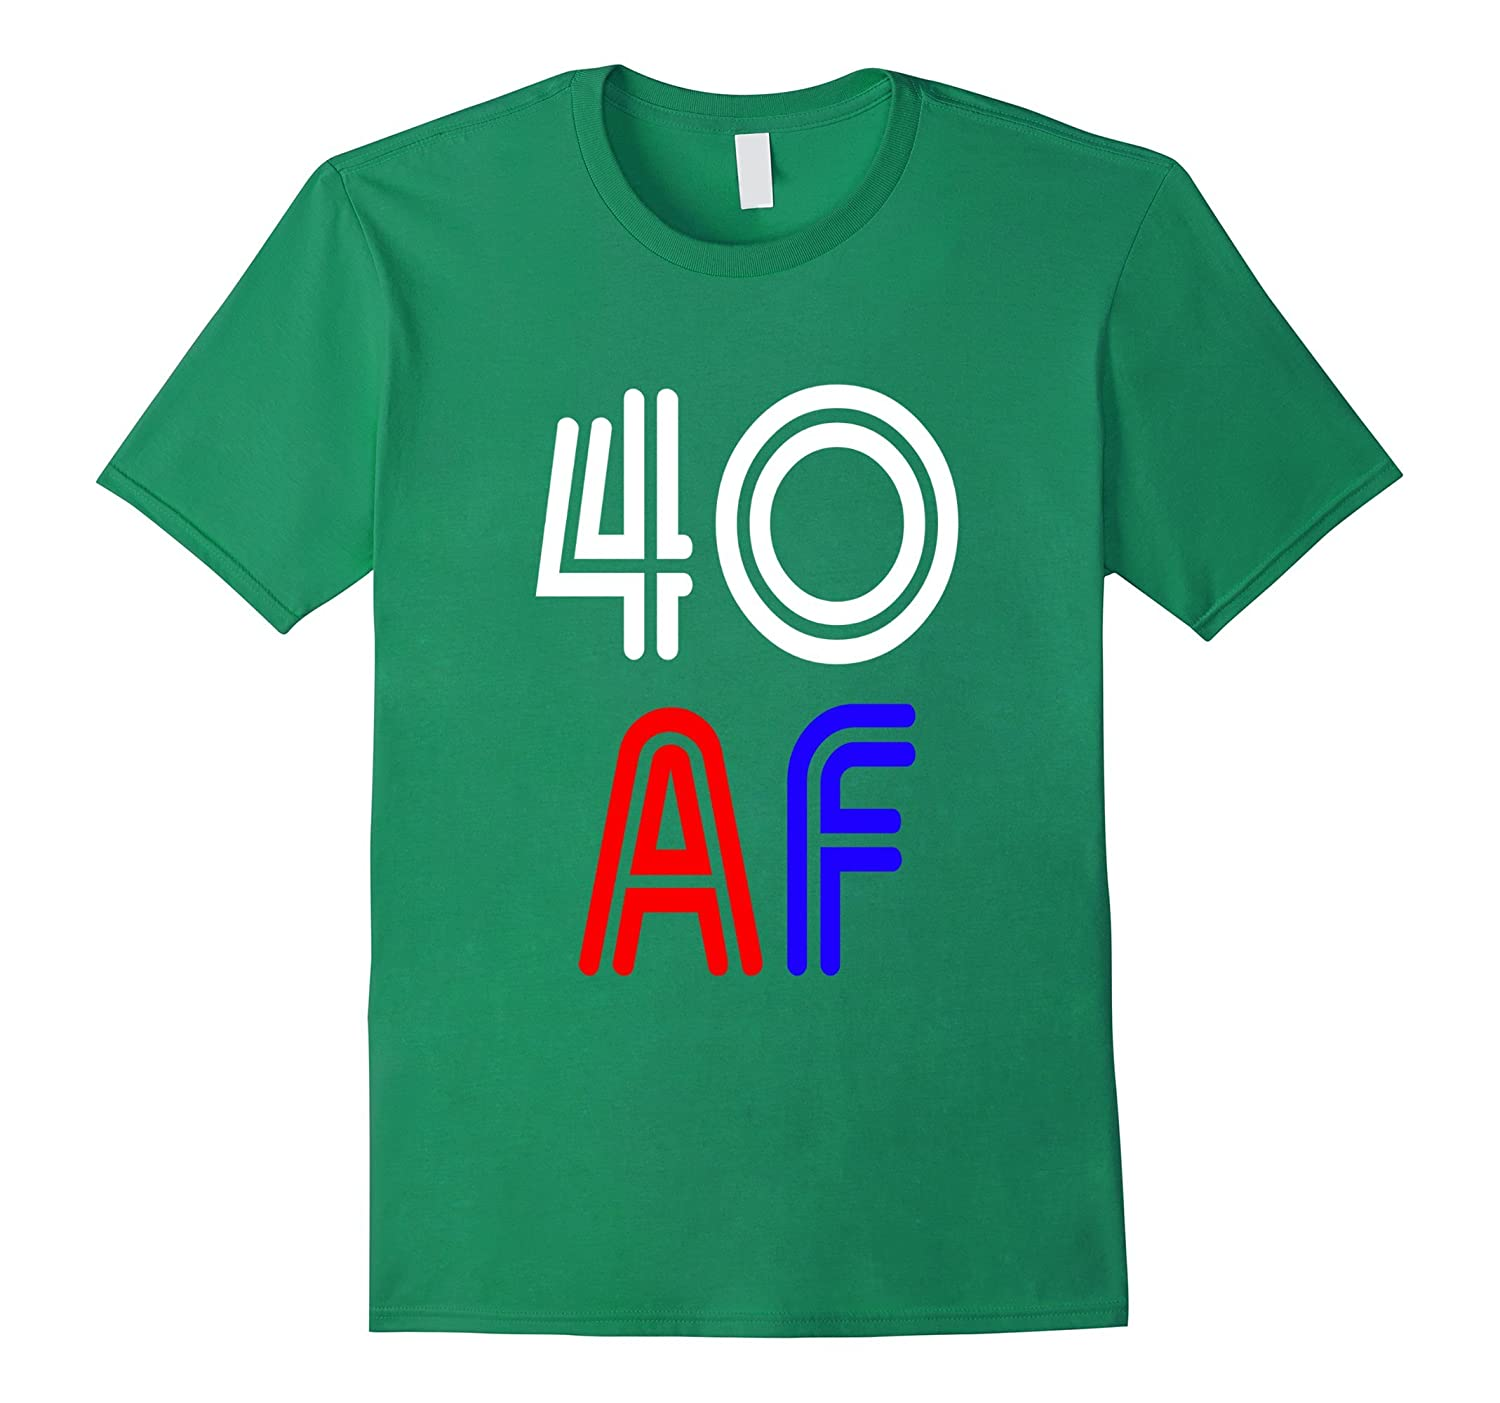 Funny 40 AF Shirt Years Old 40th Birthday Gift ANZ